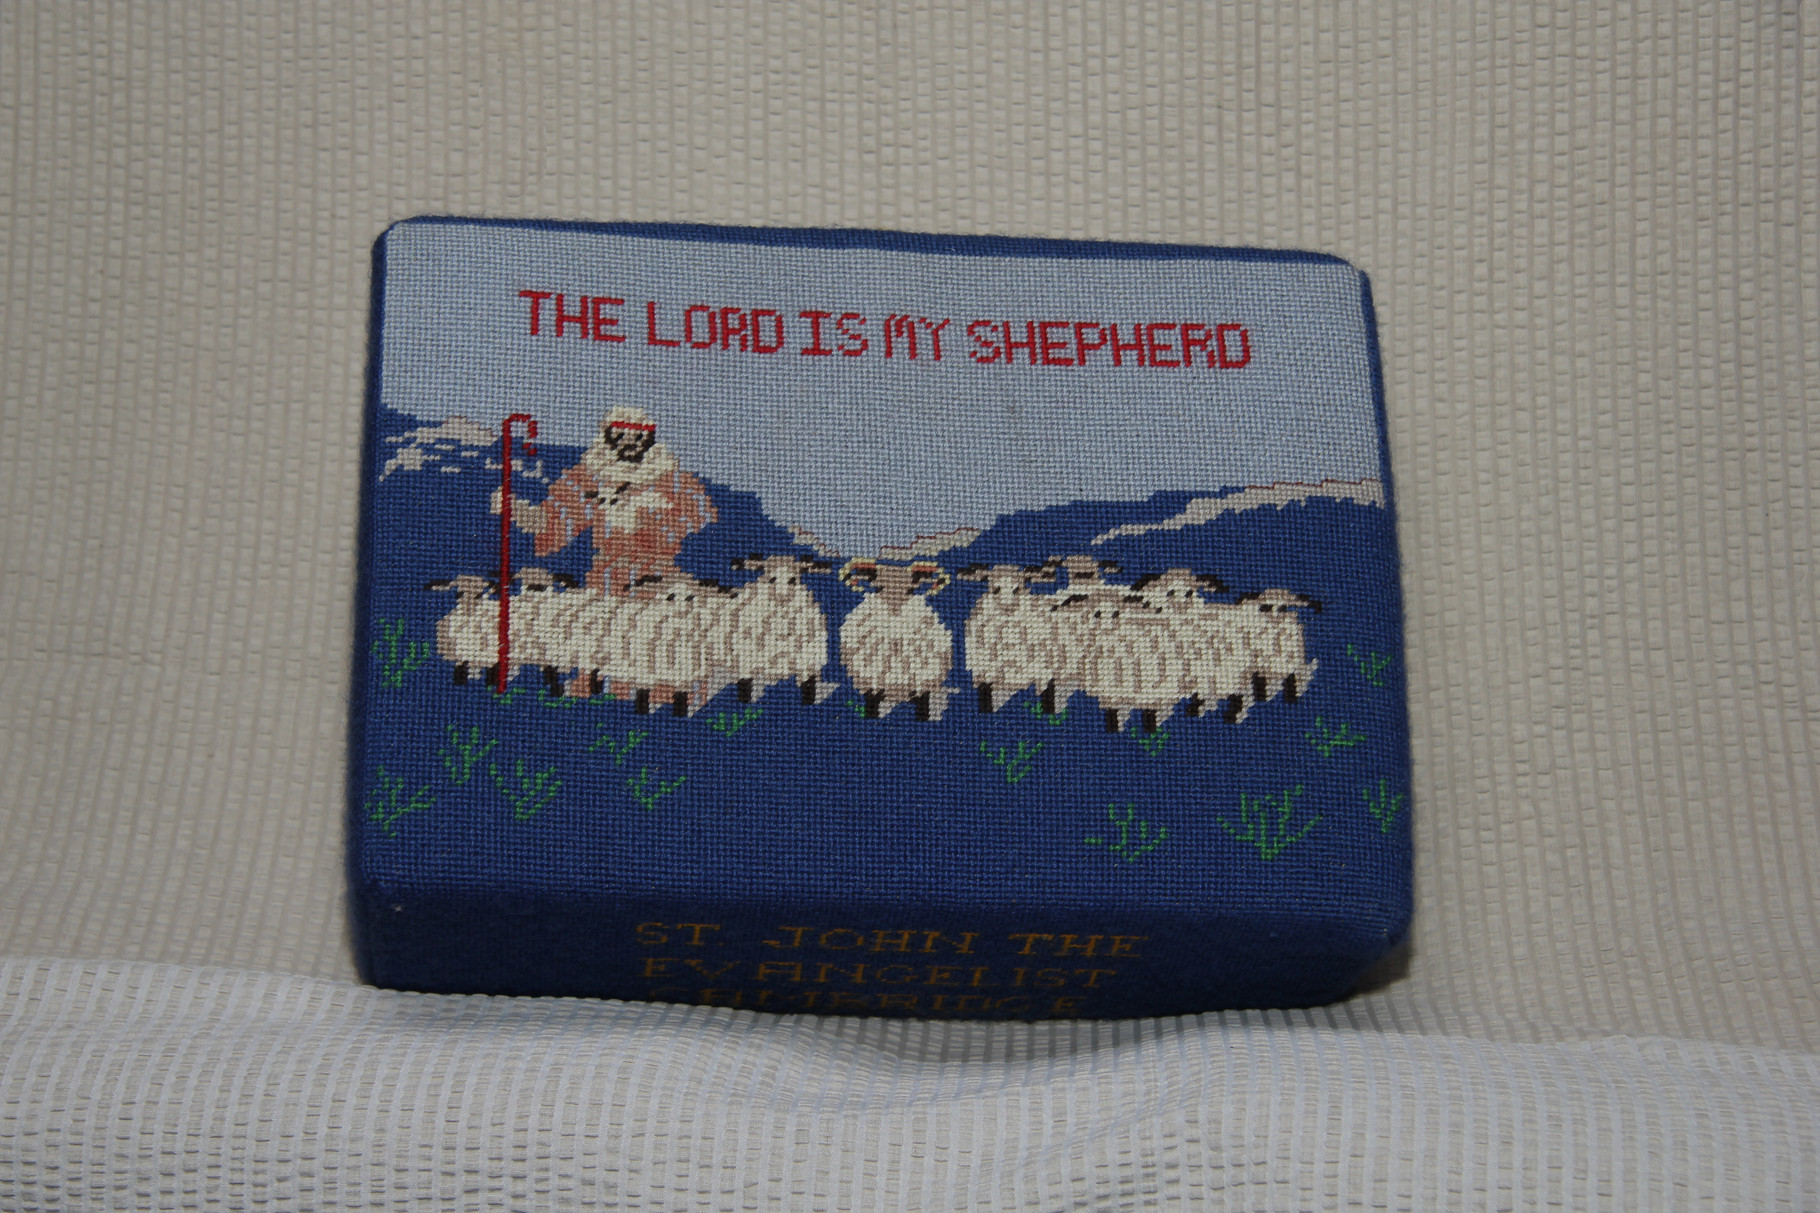 5. The Lord is my Shepherd – donated by Lillian Swinfield and worked by Bridget Garton